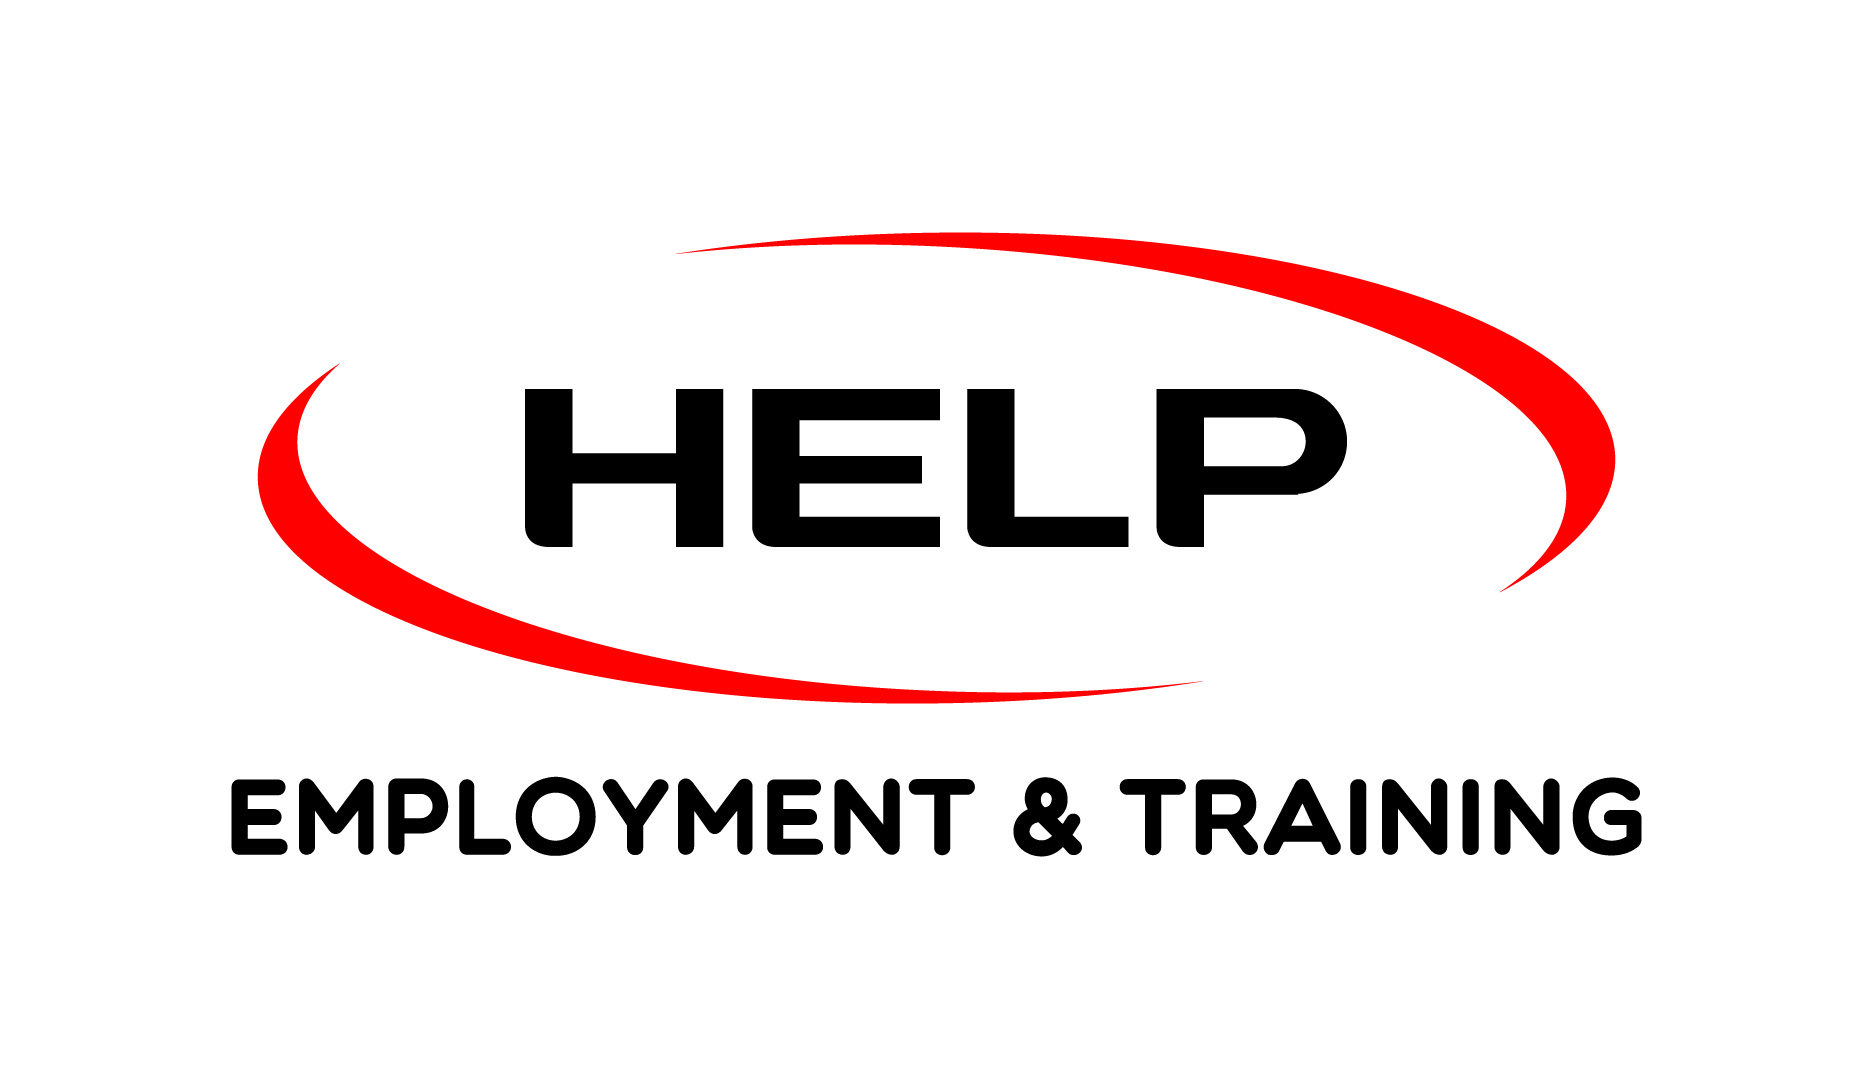 Help Employment & Training - Beaudesert